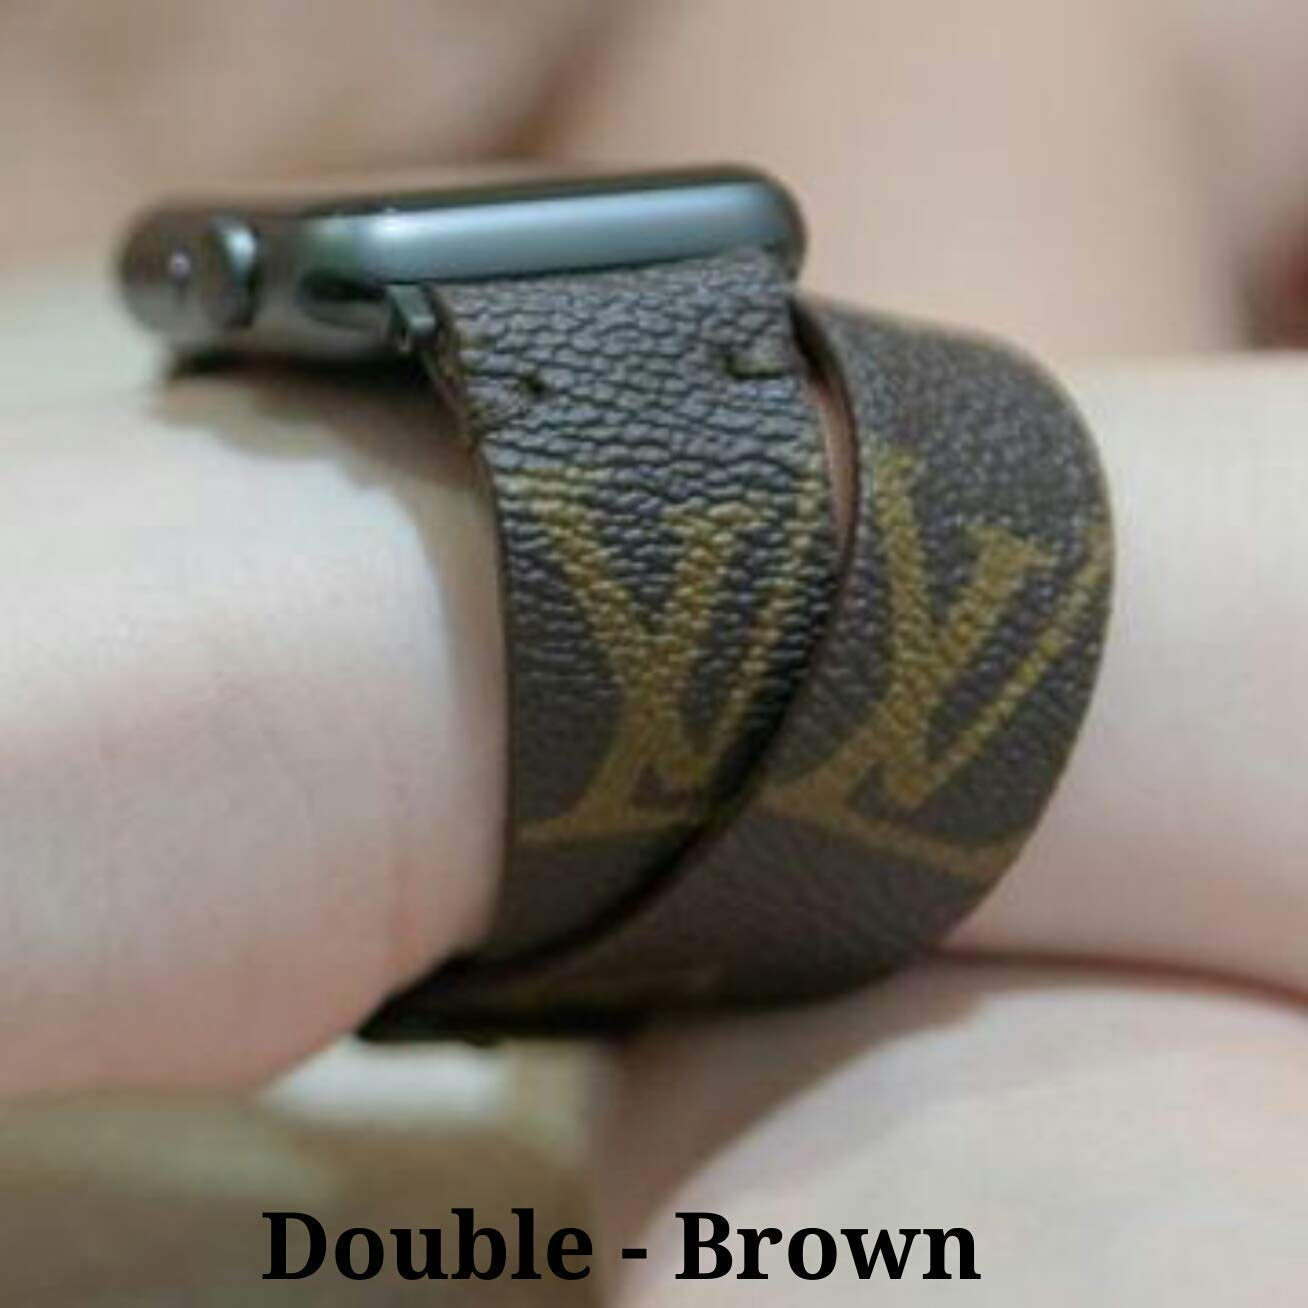 Apple Watch Band Classic L.V. Monogram Double Loop Strap for Apple Watch Series 1, 2, 3, 4, 5 by Leatherian  Handcrafted